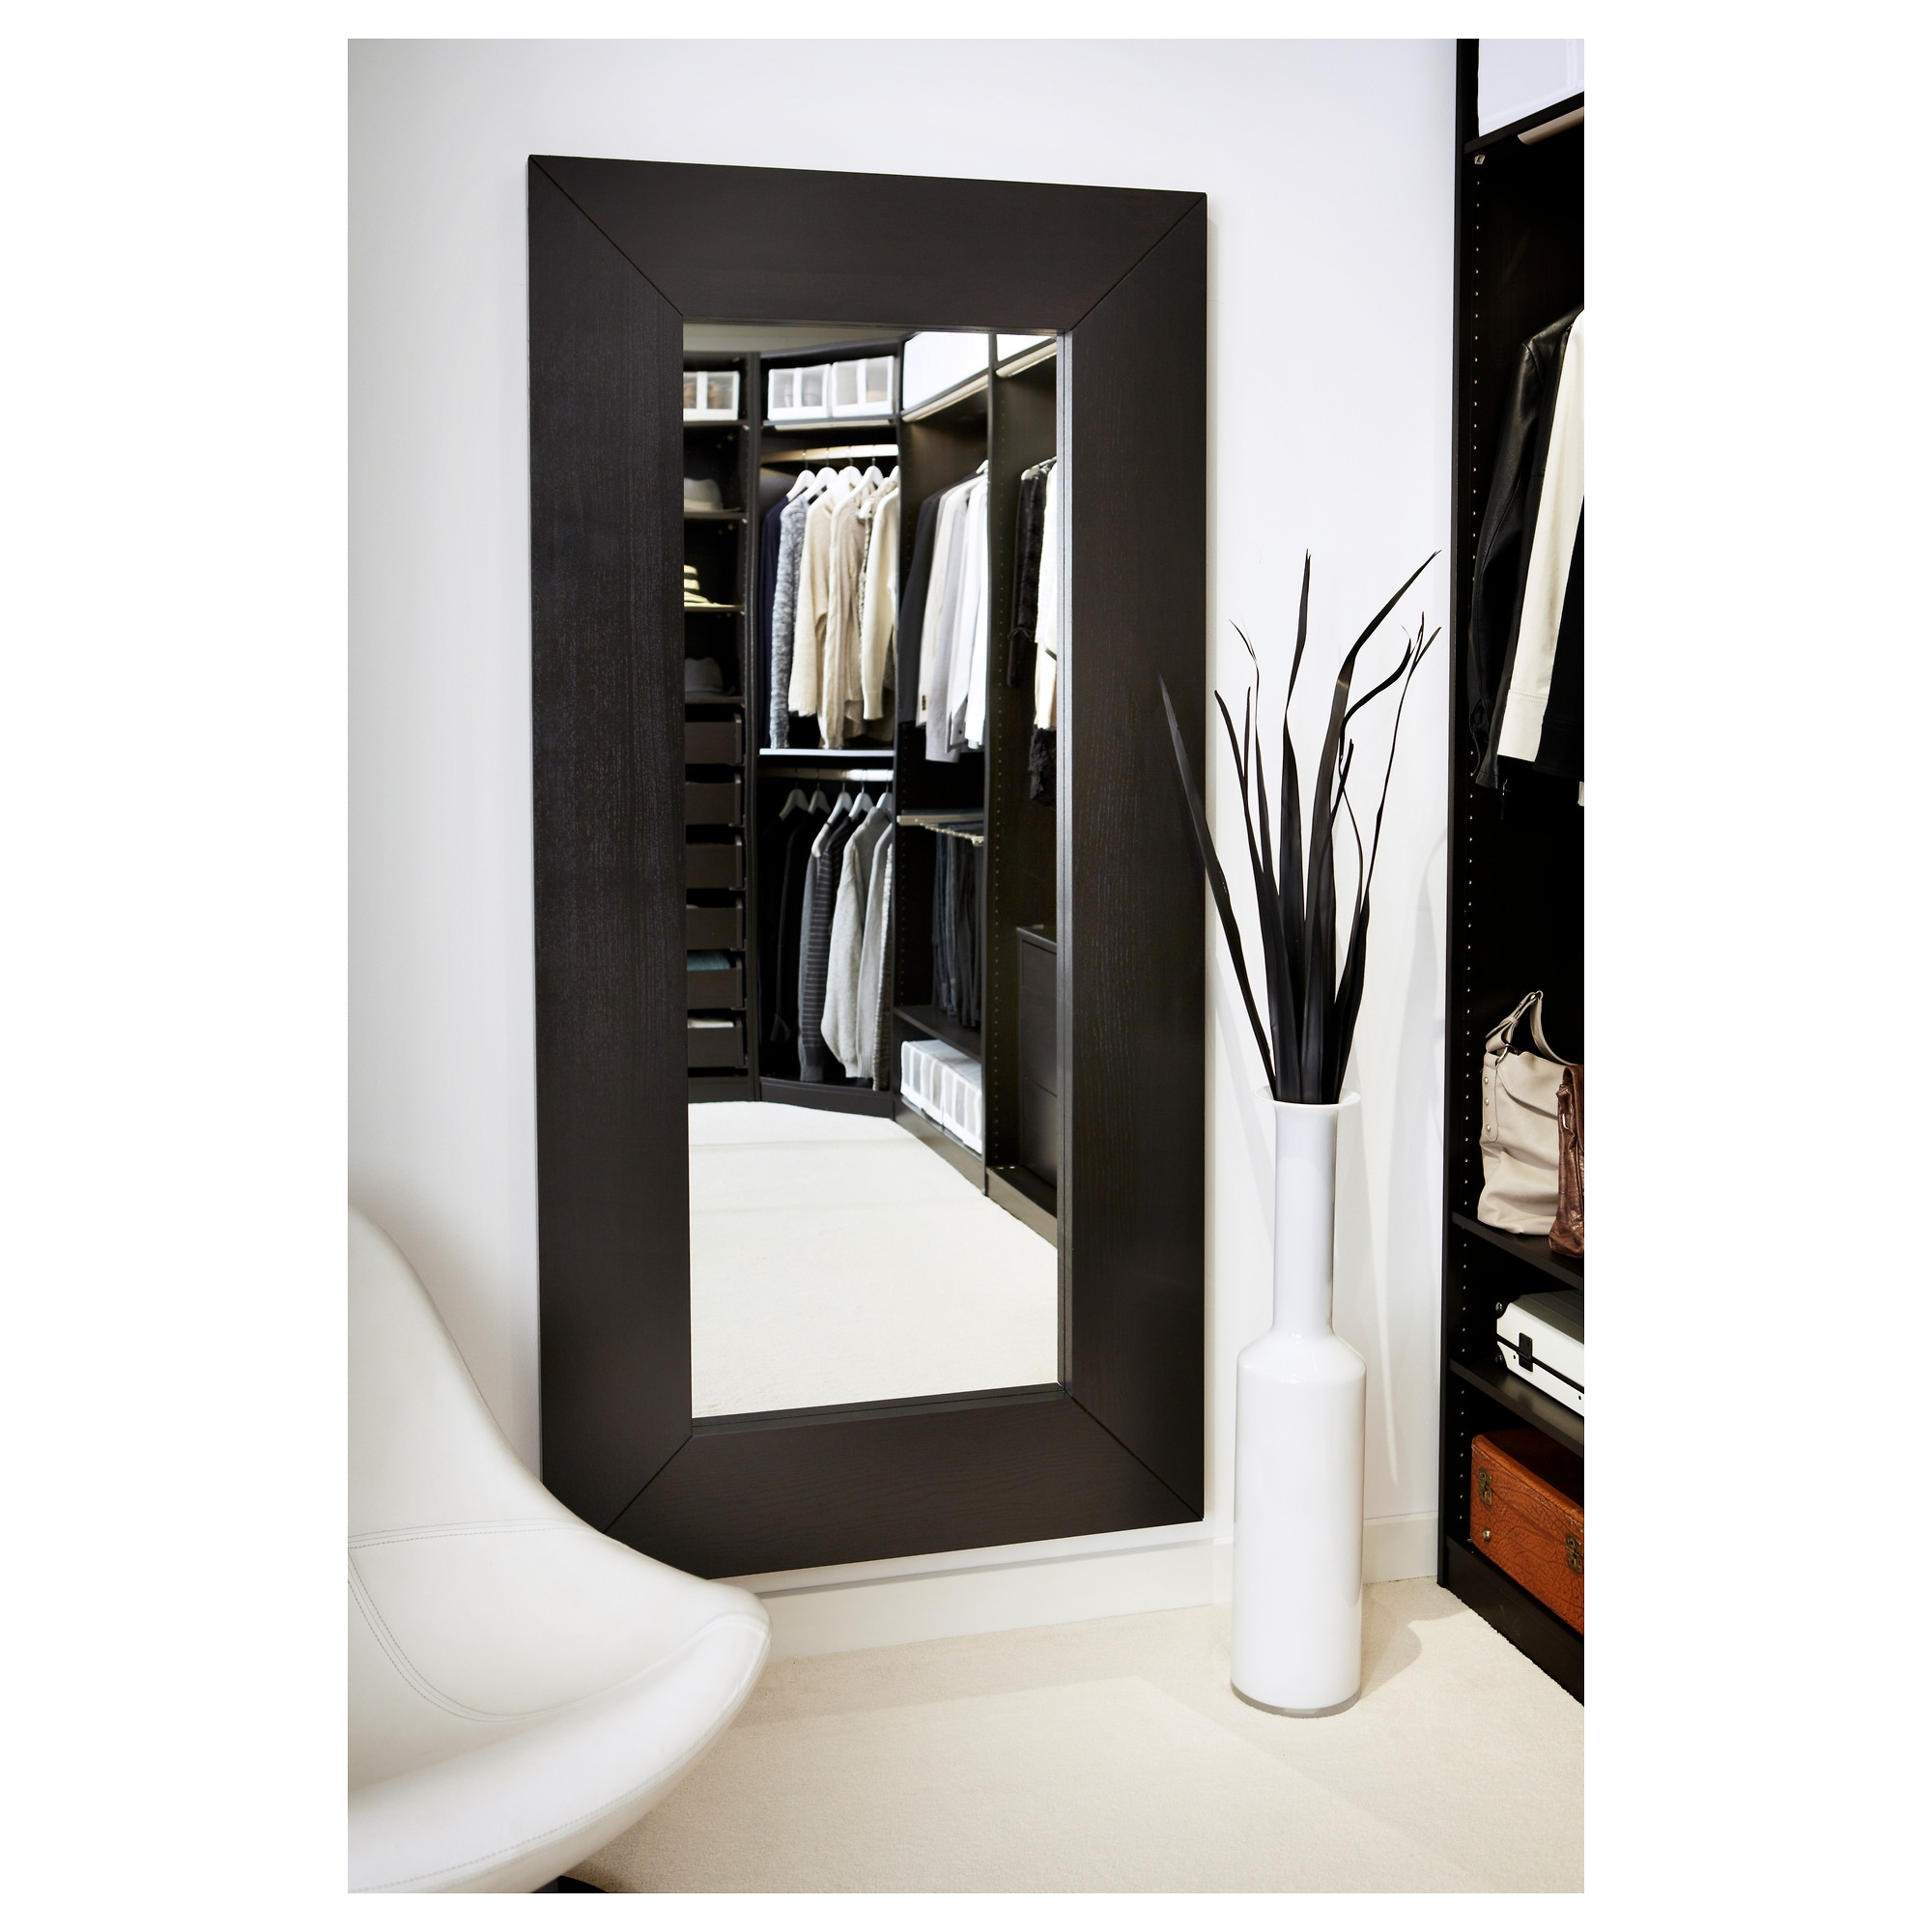 Flooring Full Length Floor Mirrors For Bedrooms Standing Mirror Inside Black Floor Standing Mirror (Image 8 of 15)